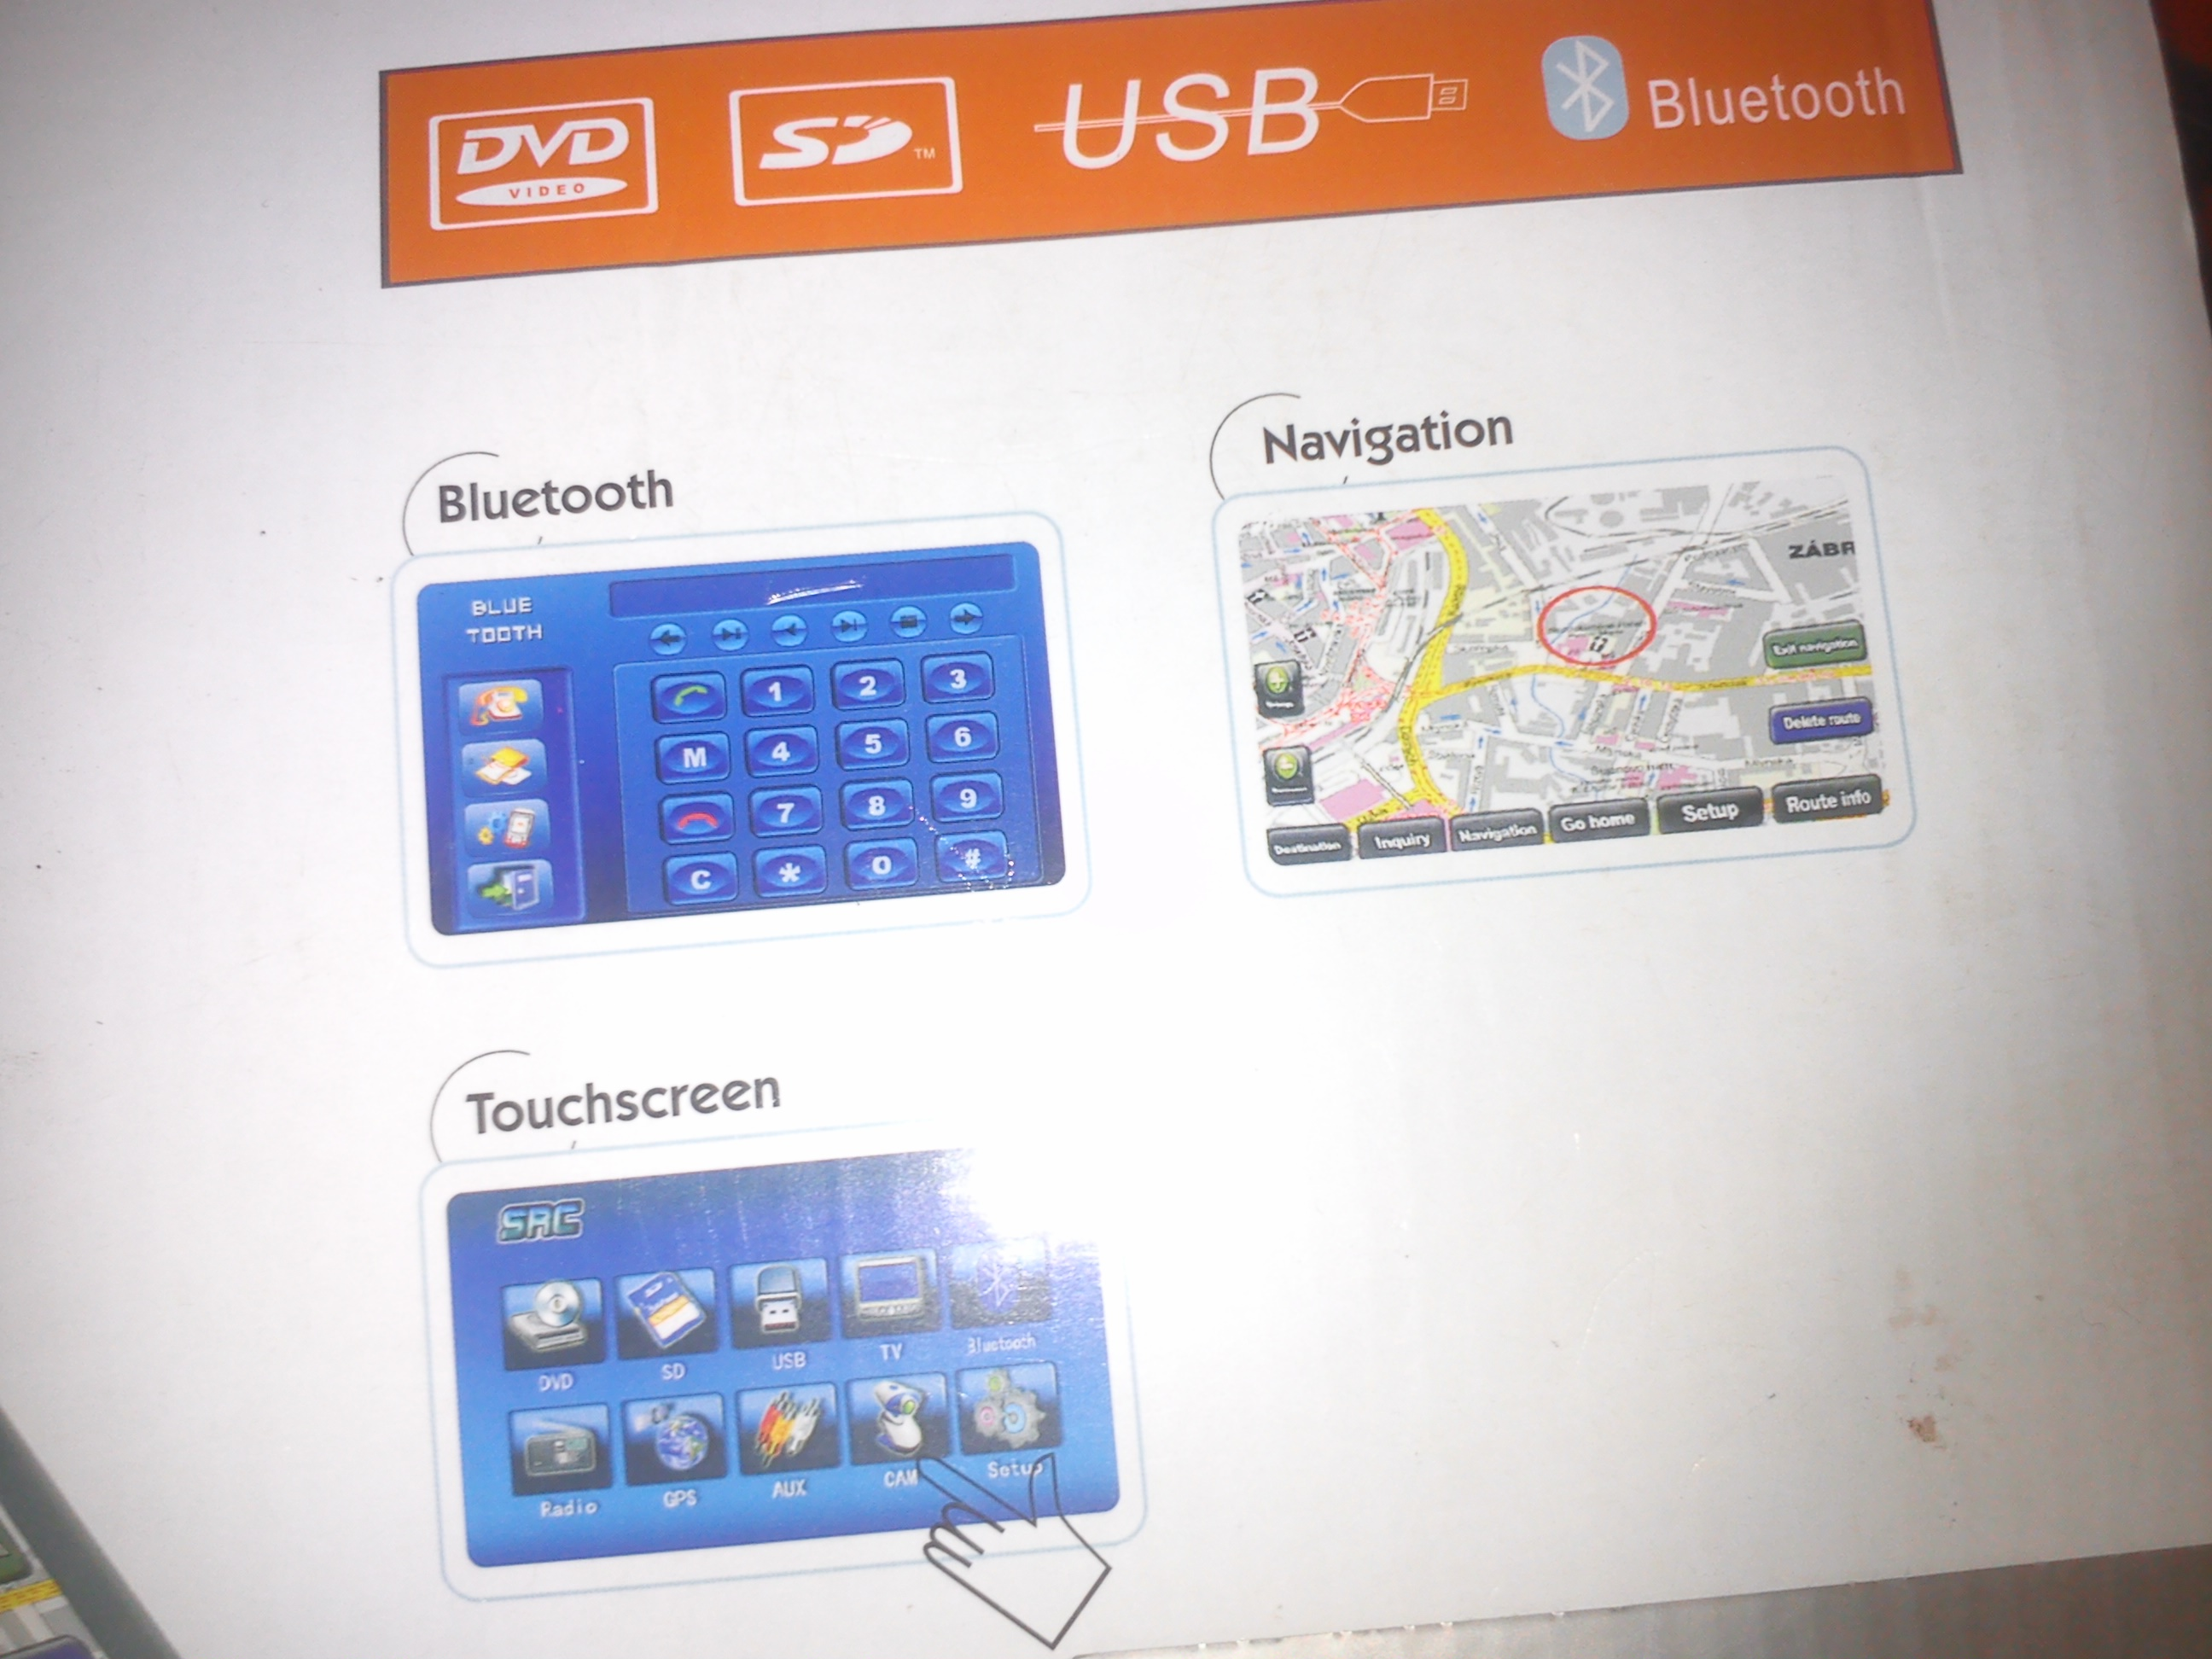 touchscreen dvd with nawigation system